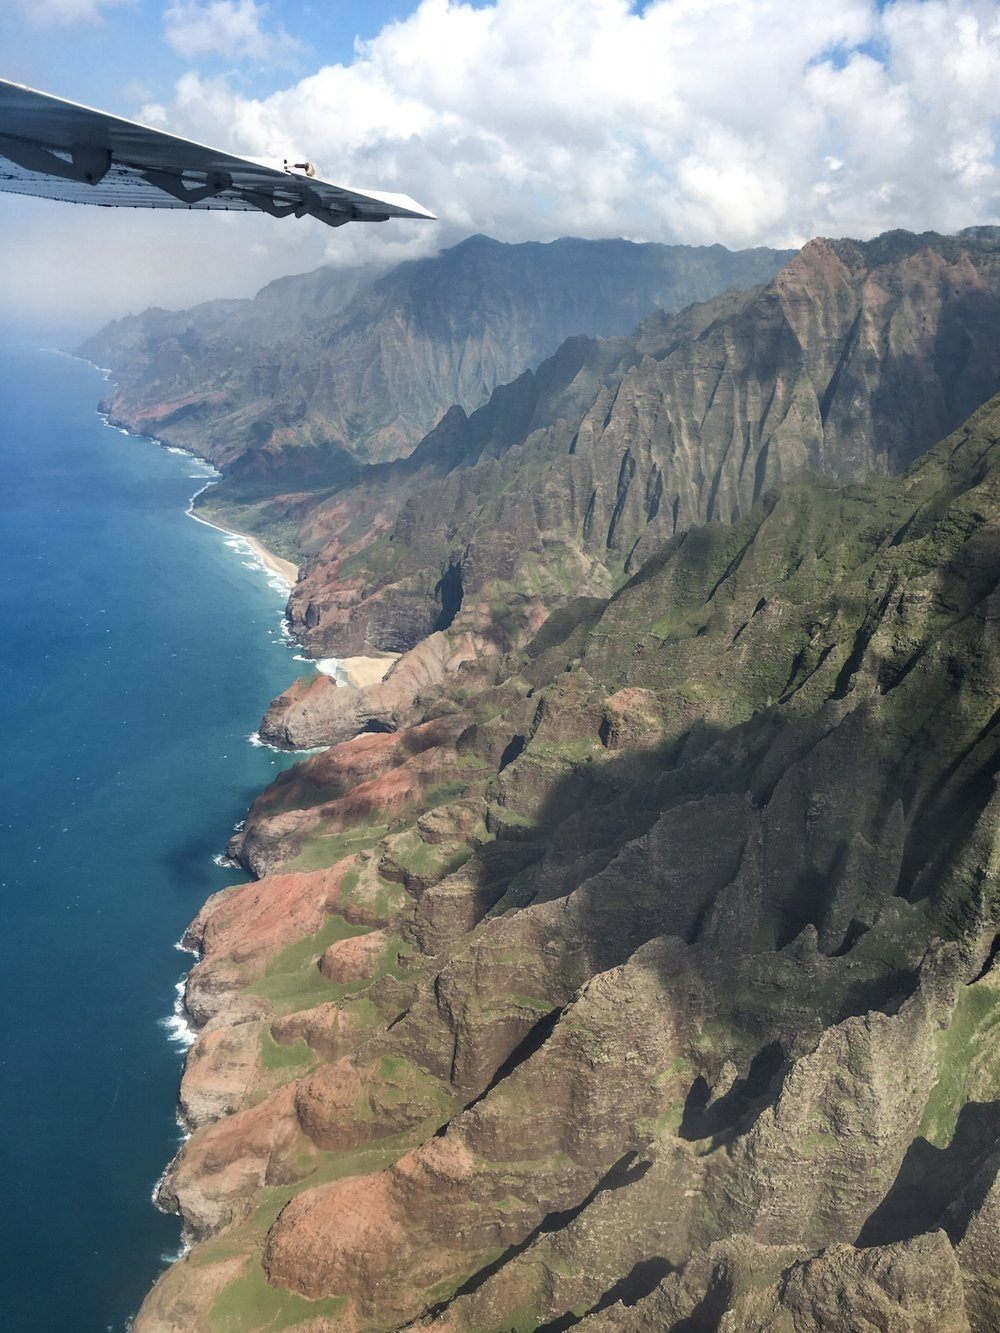 FLY OVER HAWAII'S DRAMATIC COAST